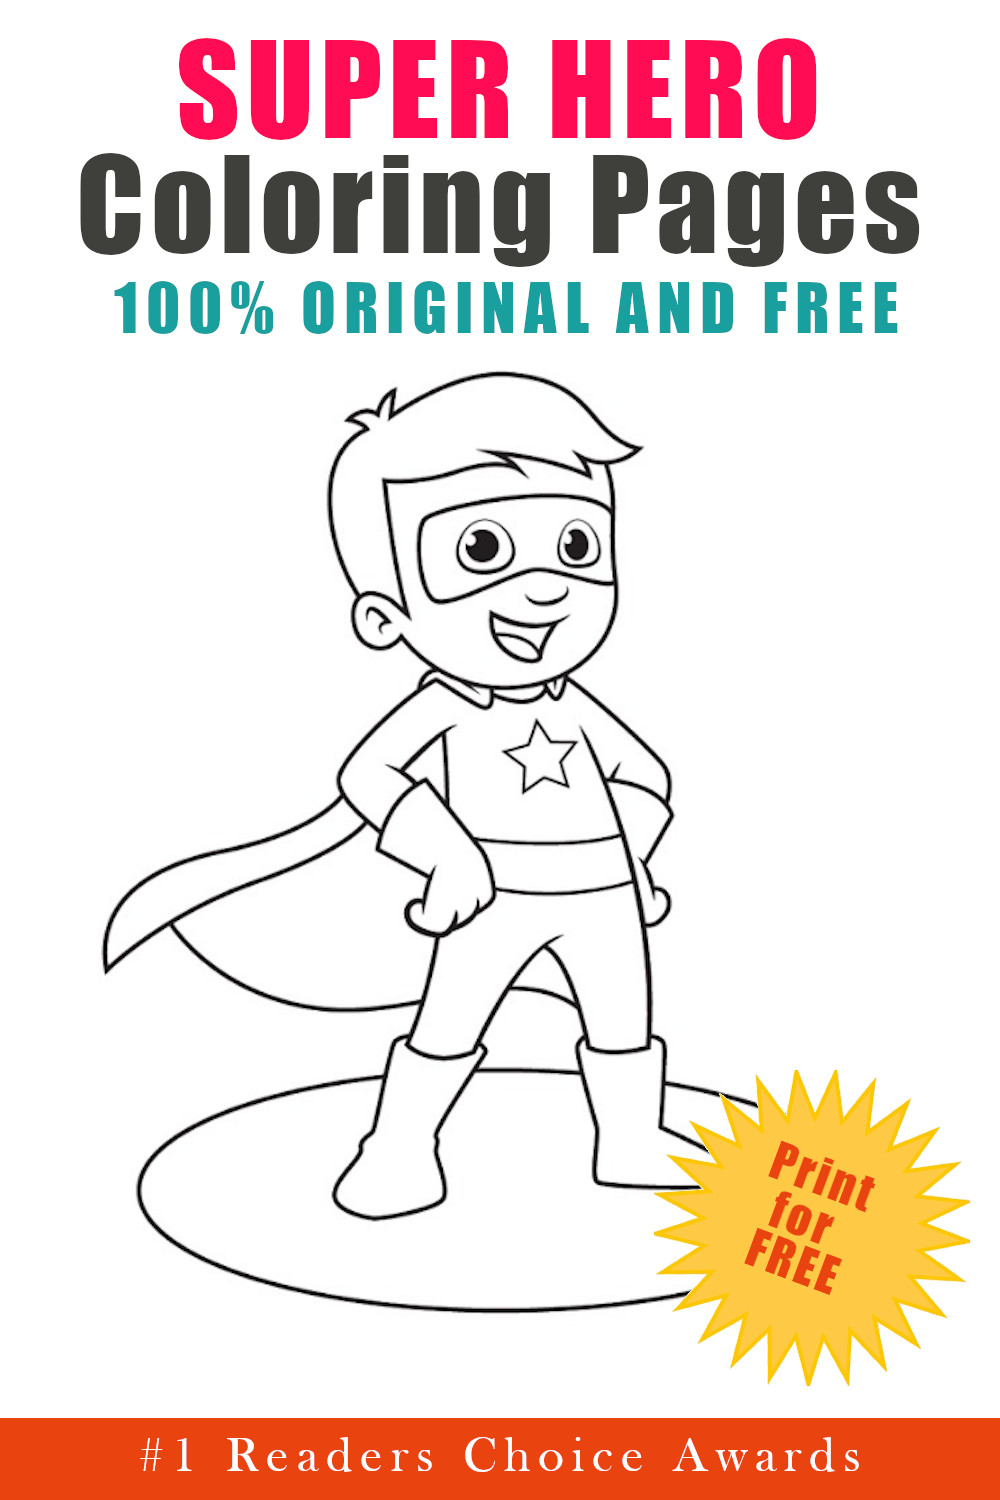 original and free super hero coloring pages